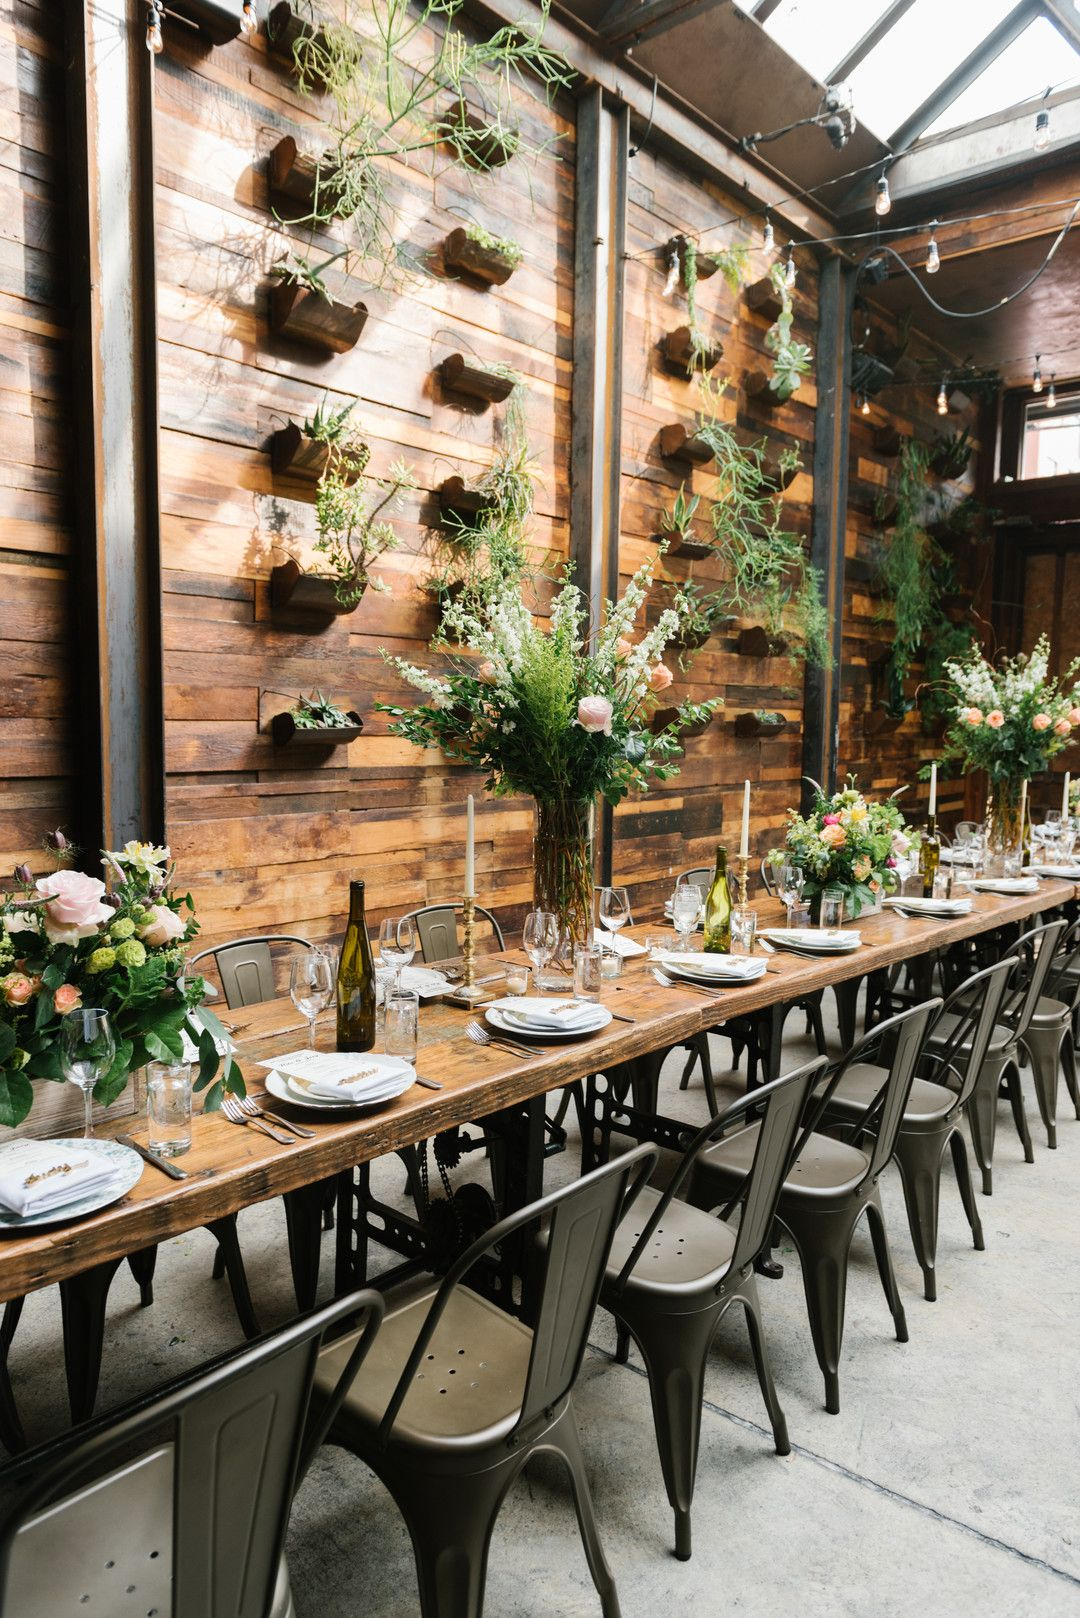 rita & joey in 2020 (With images) Brooklyn winery